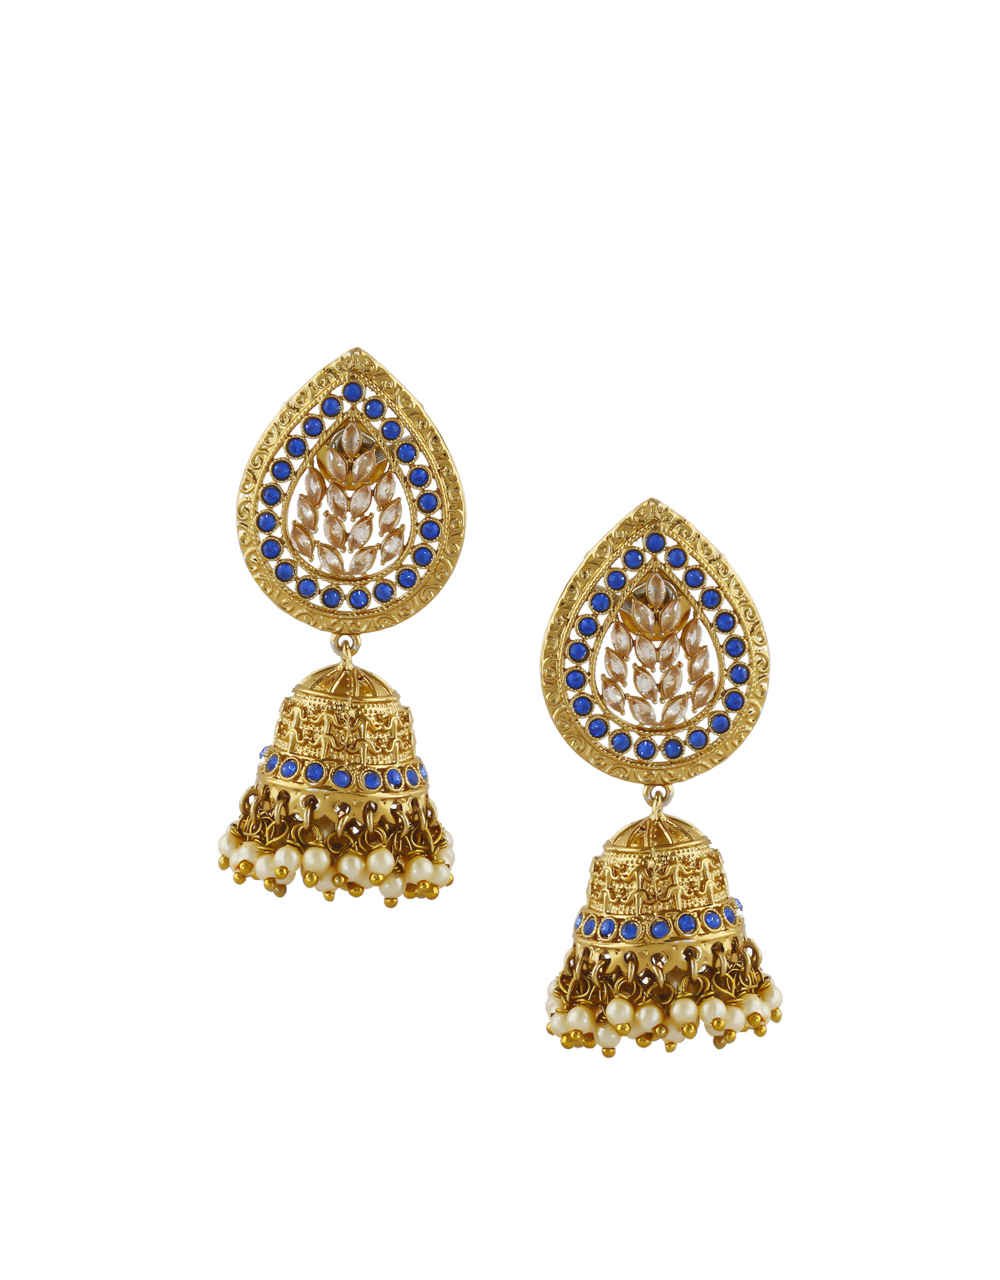 Blue Colour Gold Finish Studded With Stones Moti Earrings